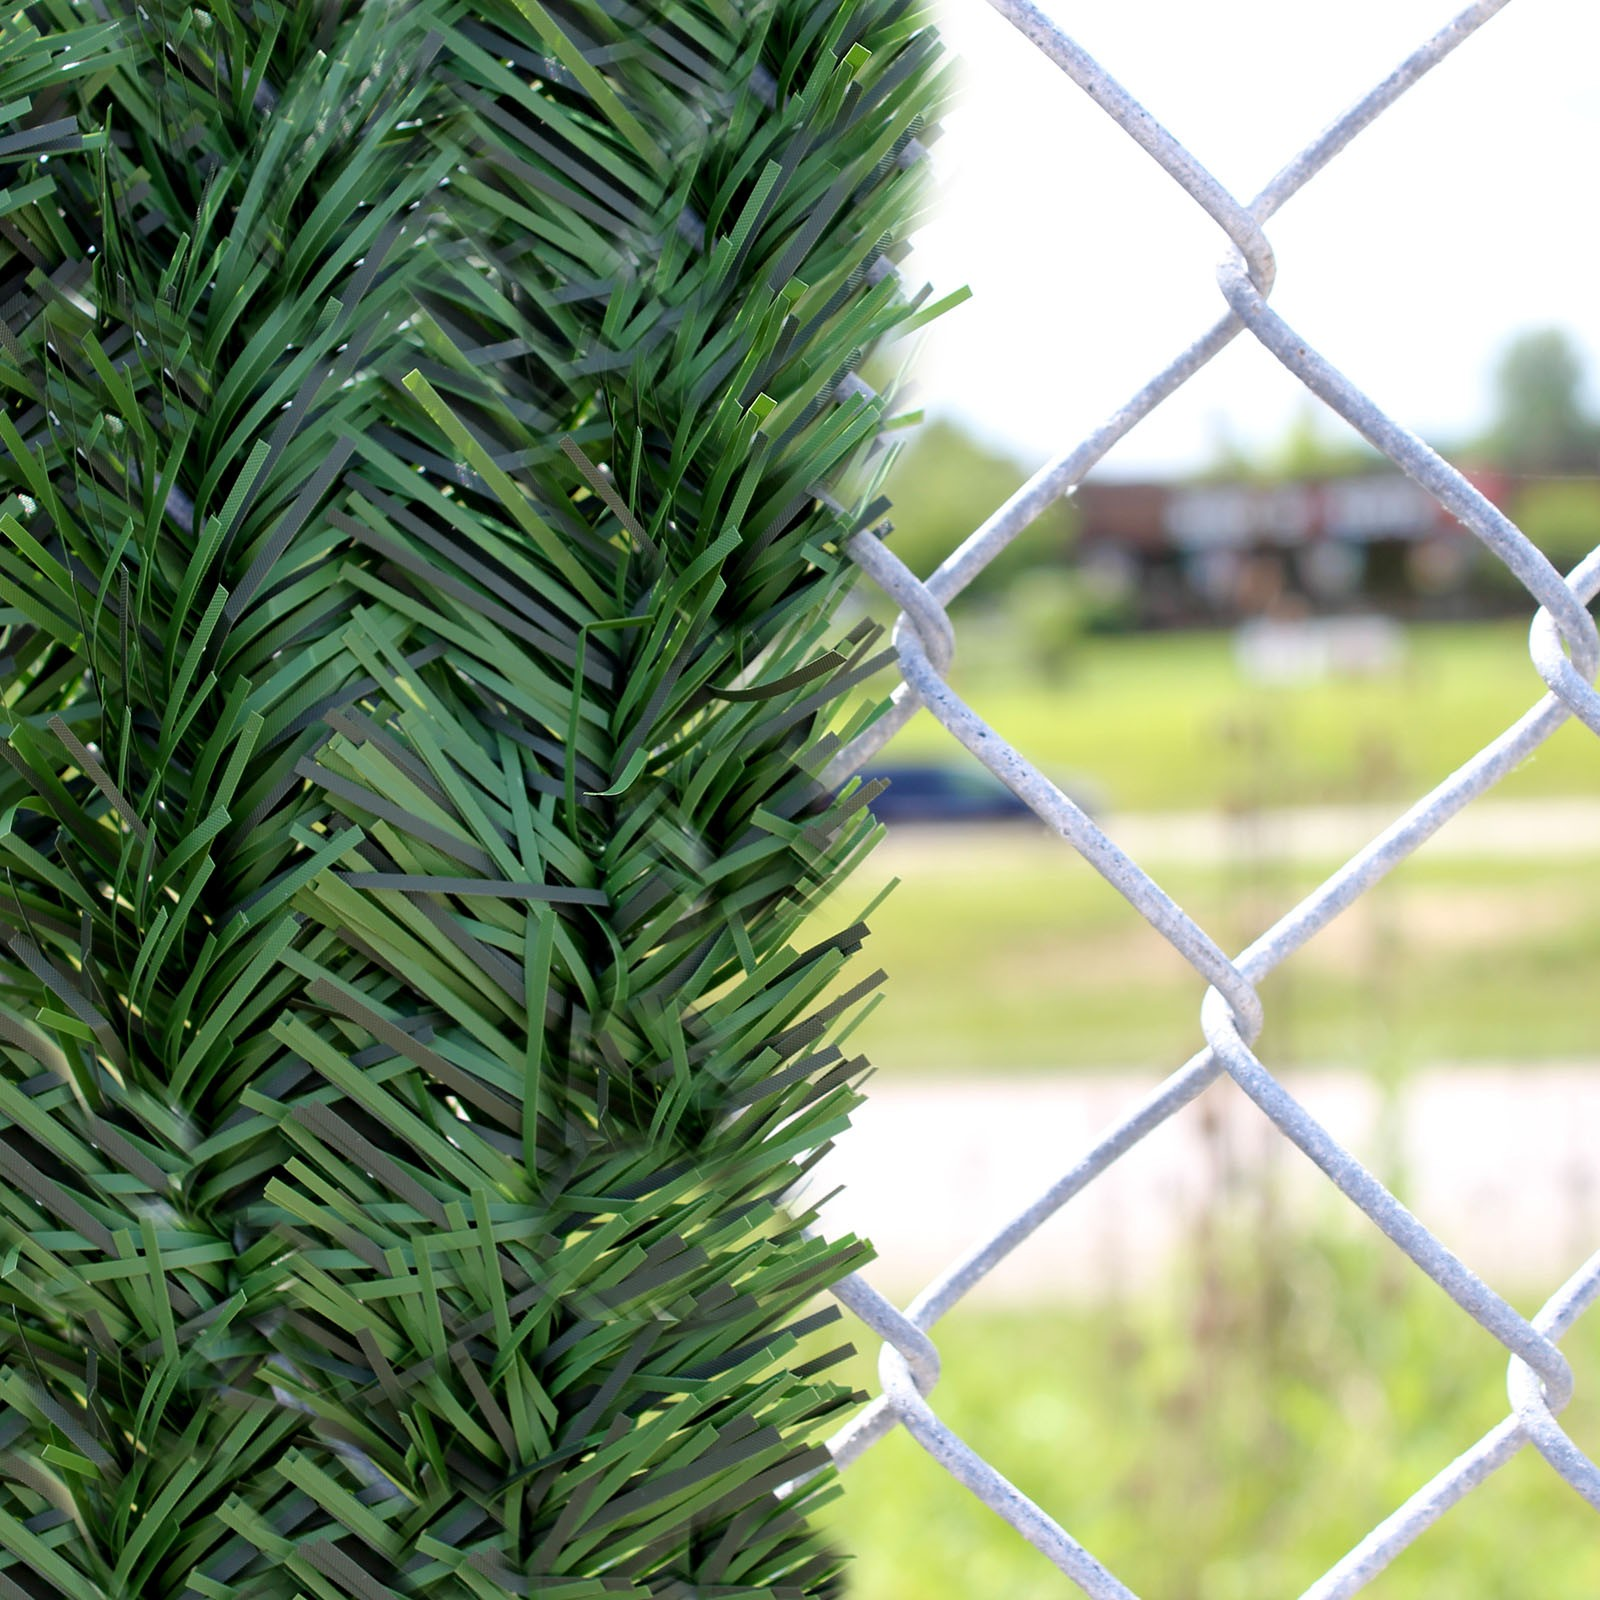 Privacy screen for chain link fence sears - 5u0027 Chain Link Fence Hedge Slats